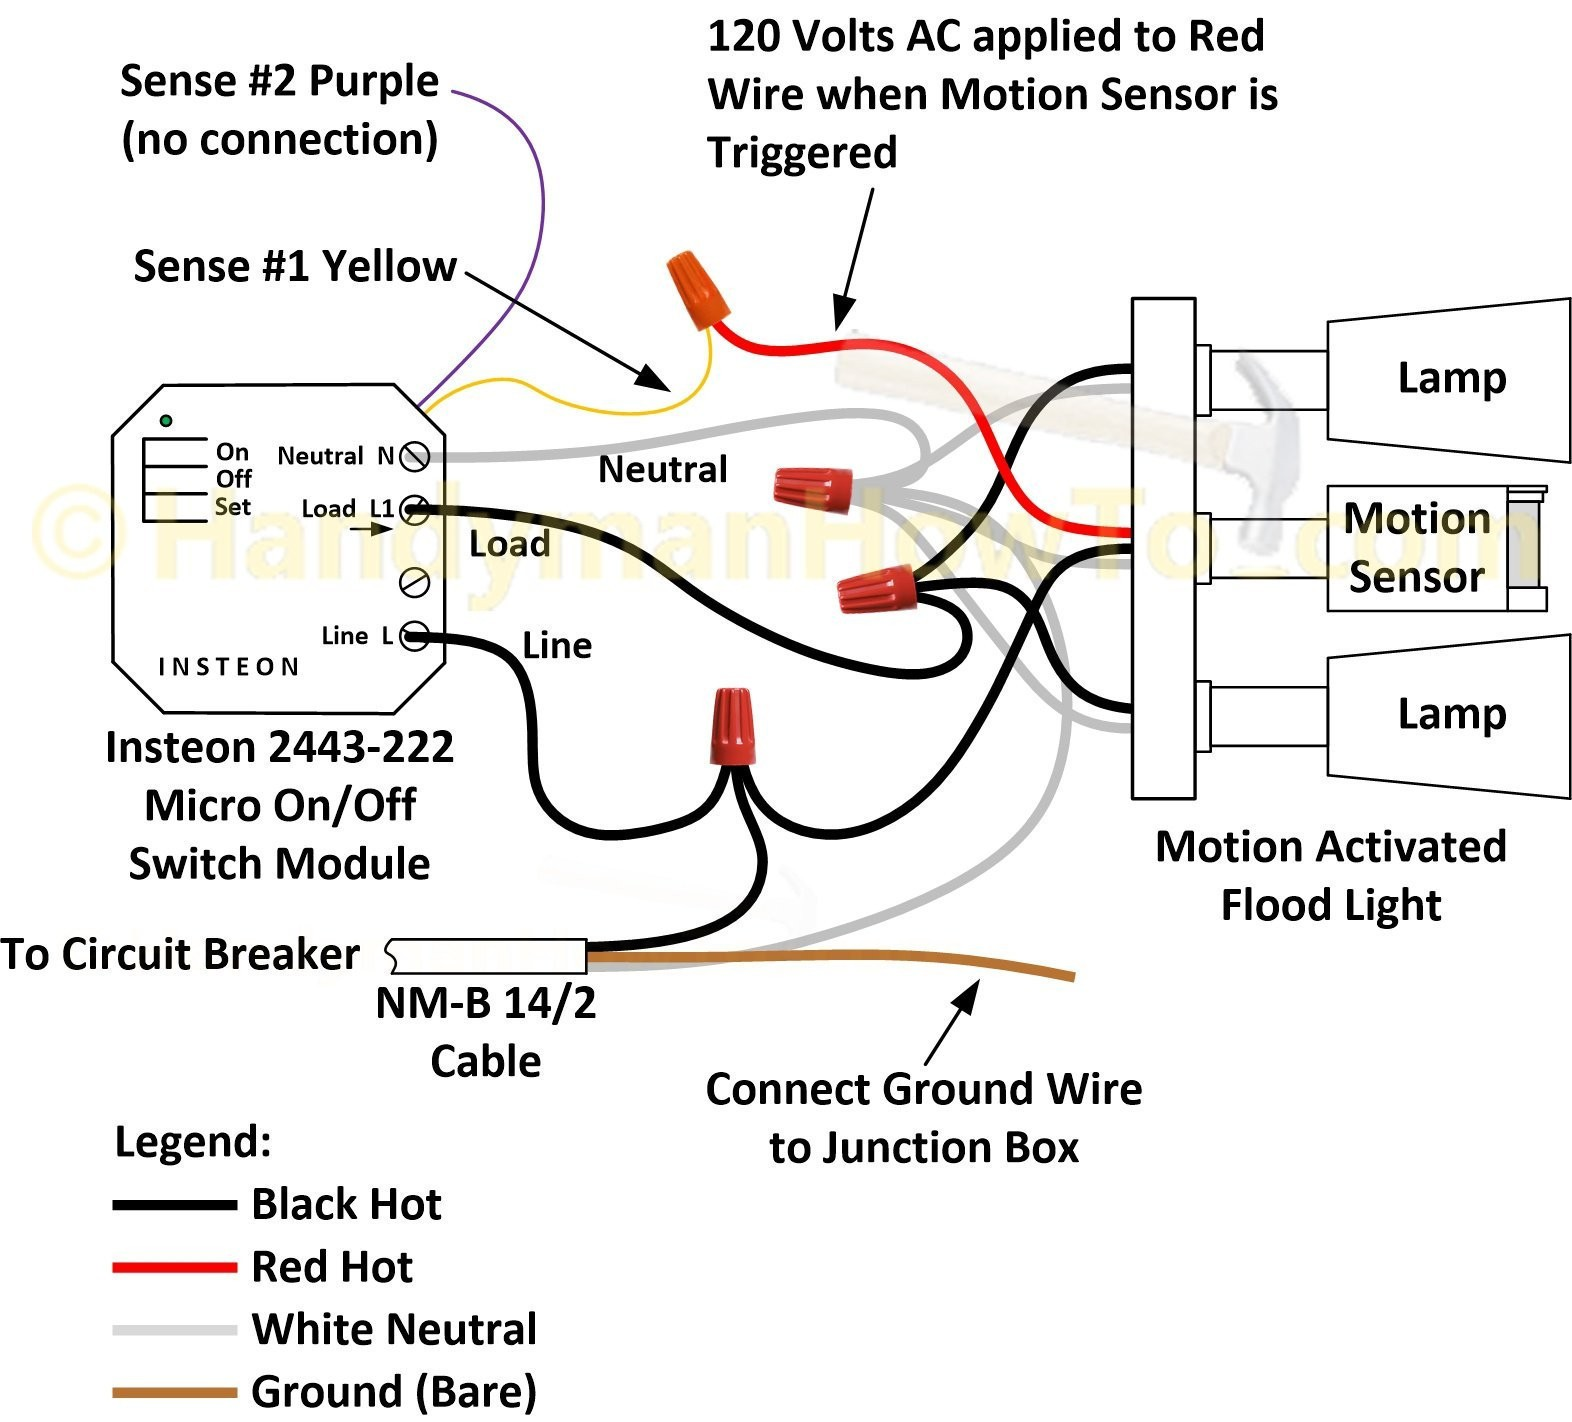 Wiring Diagram for Outdoor Security Light 2019 Wiring Diagram for Pir Security Light Valid Wiring Diagram